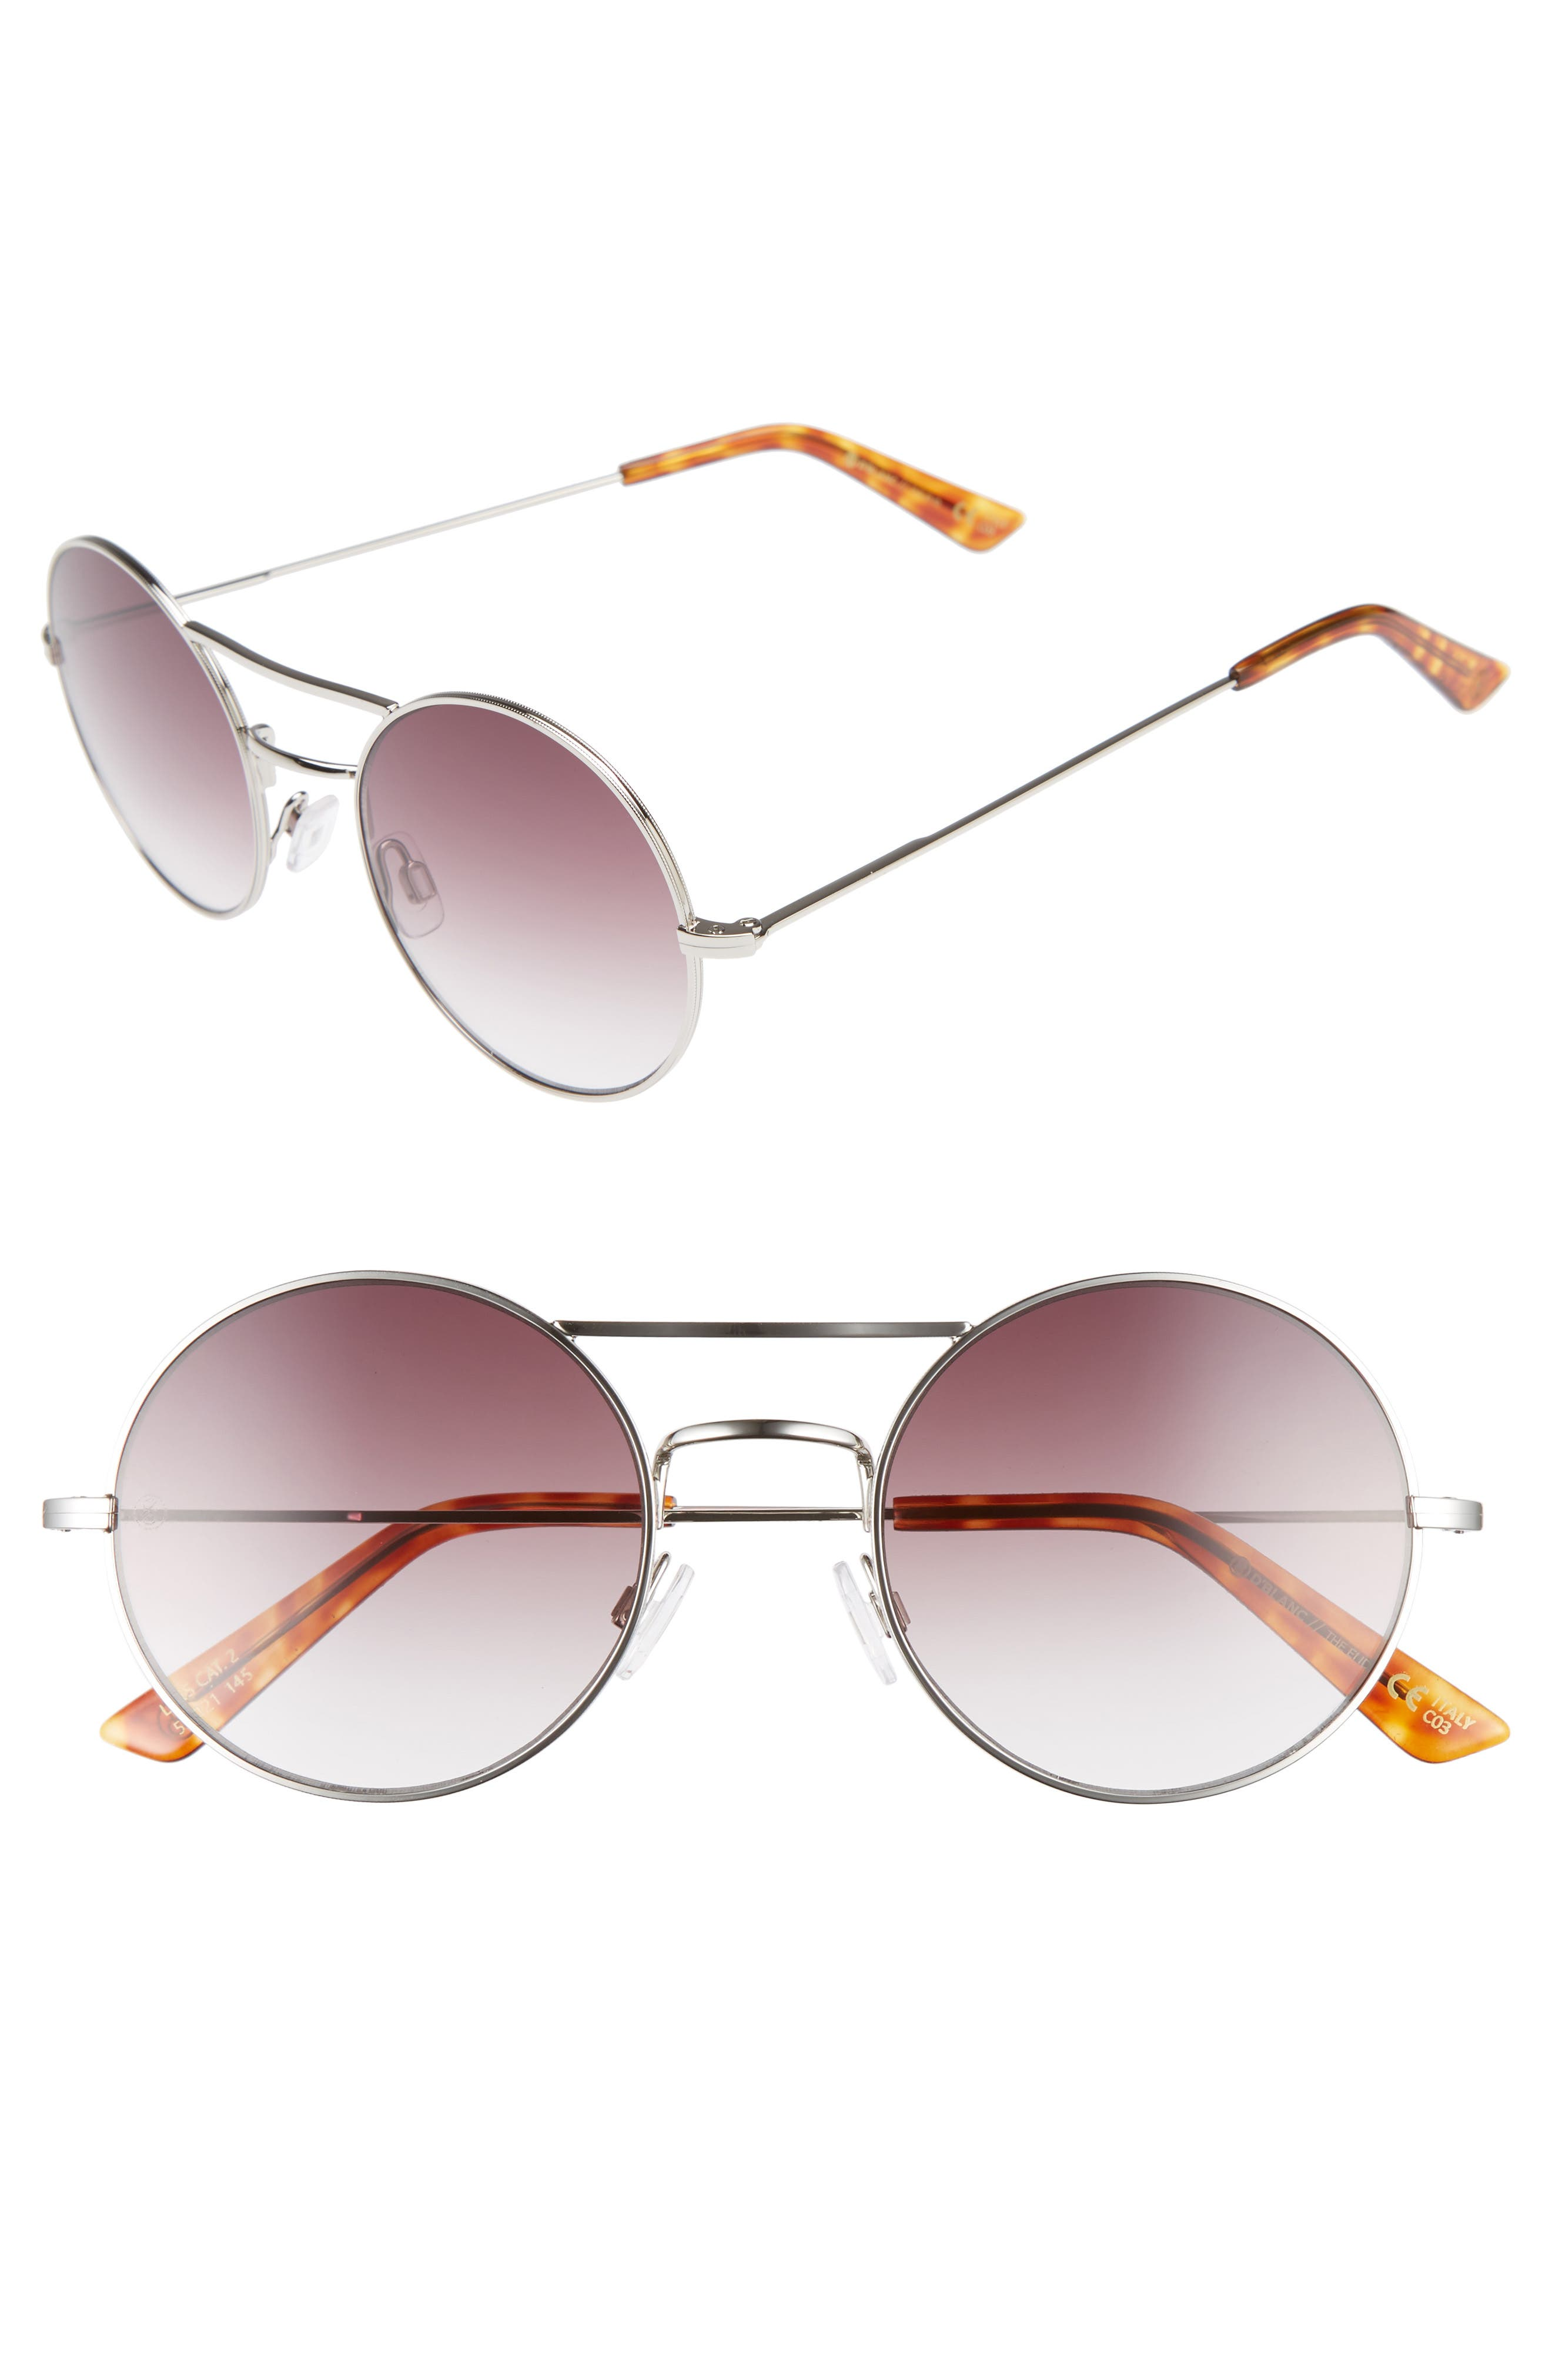 D'BLANC The End 52mm Gradient Round Sunglasses,                         Main,                         color, Polished Nickel/ Retro Grey